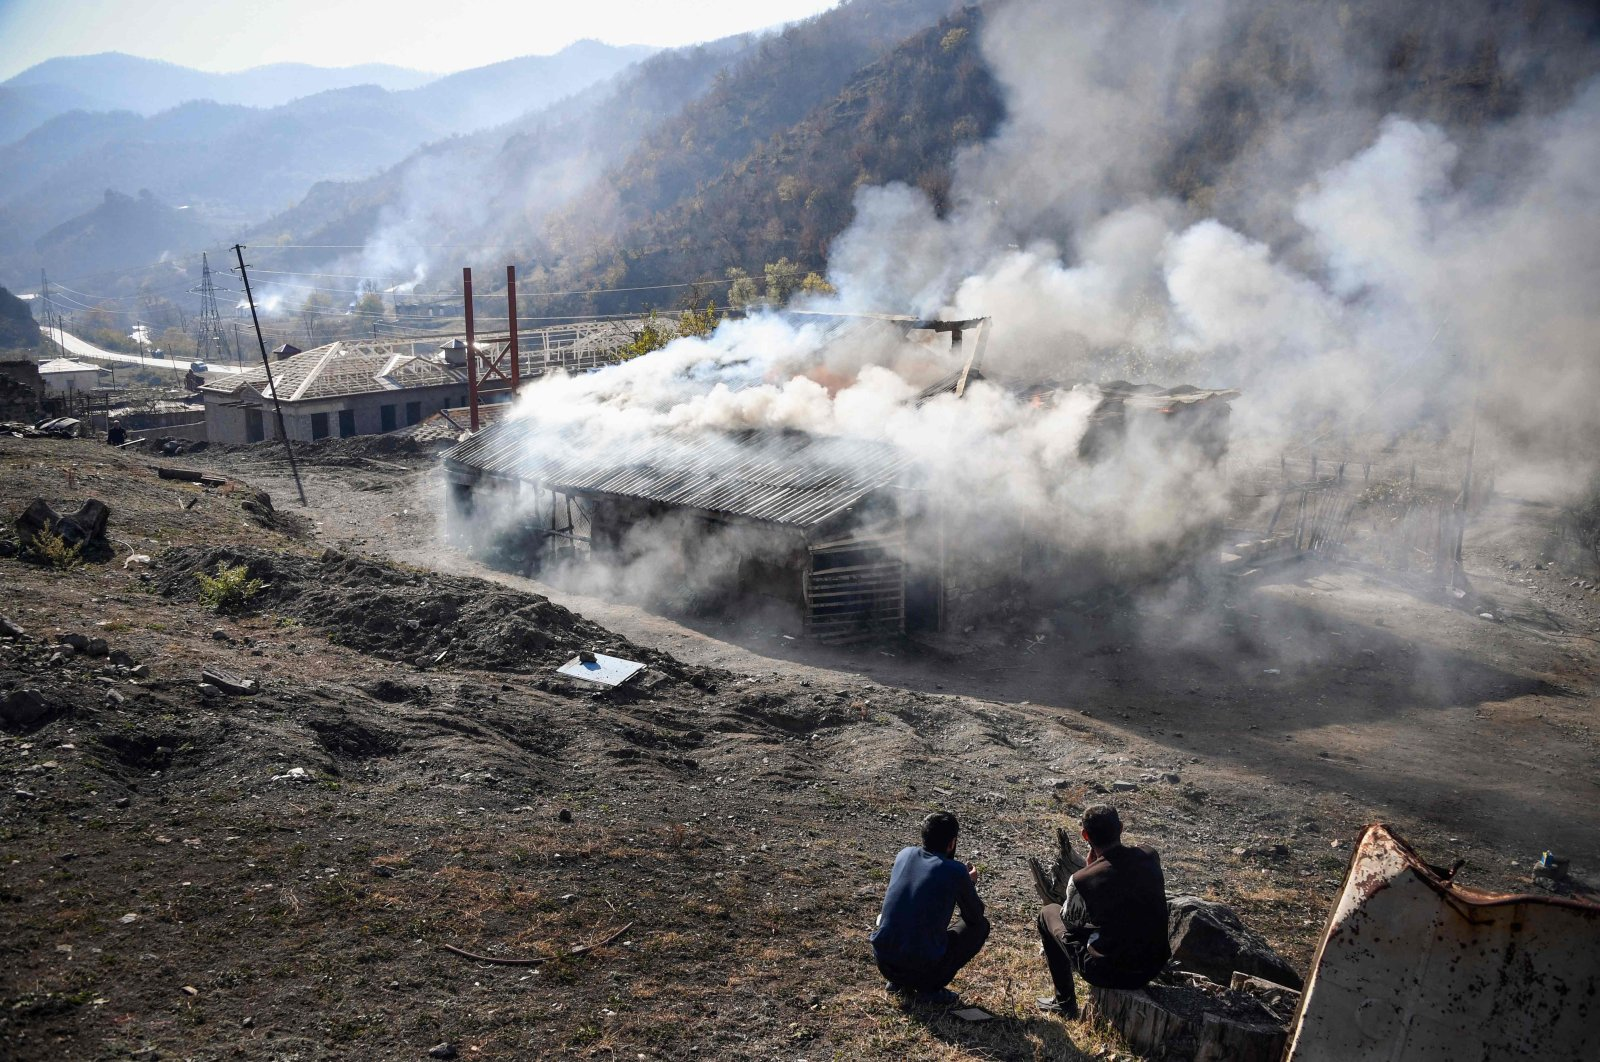 Residents look at burning houses in the village of Charektar outside the town of Kalbajar, during the military conflict between Armenia and Azerbaijan over the breakaway region of Nagorno-Karabakh, Nov. 14, 2020. (AFP)